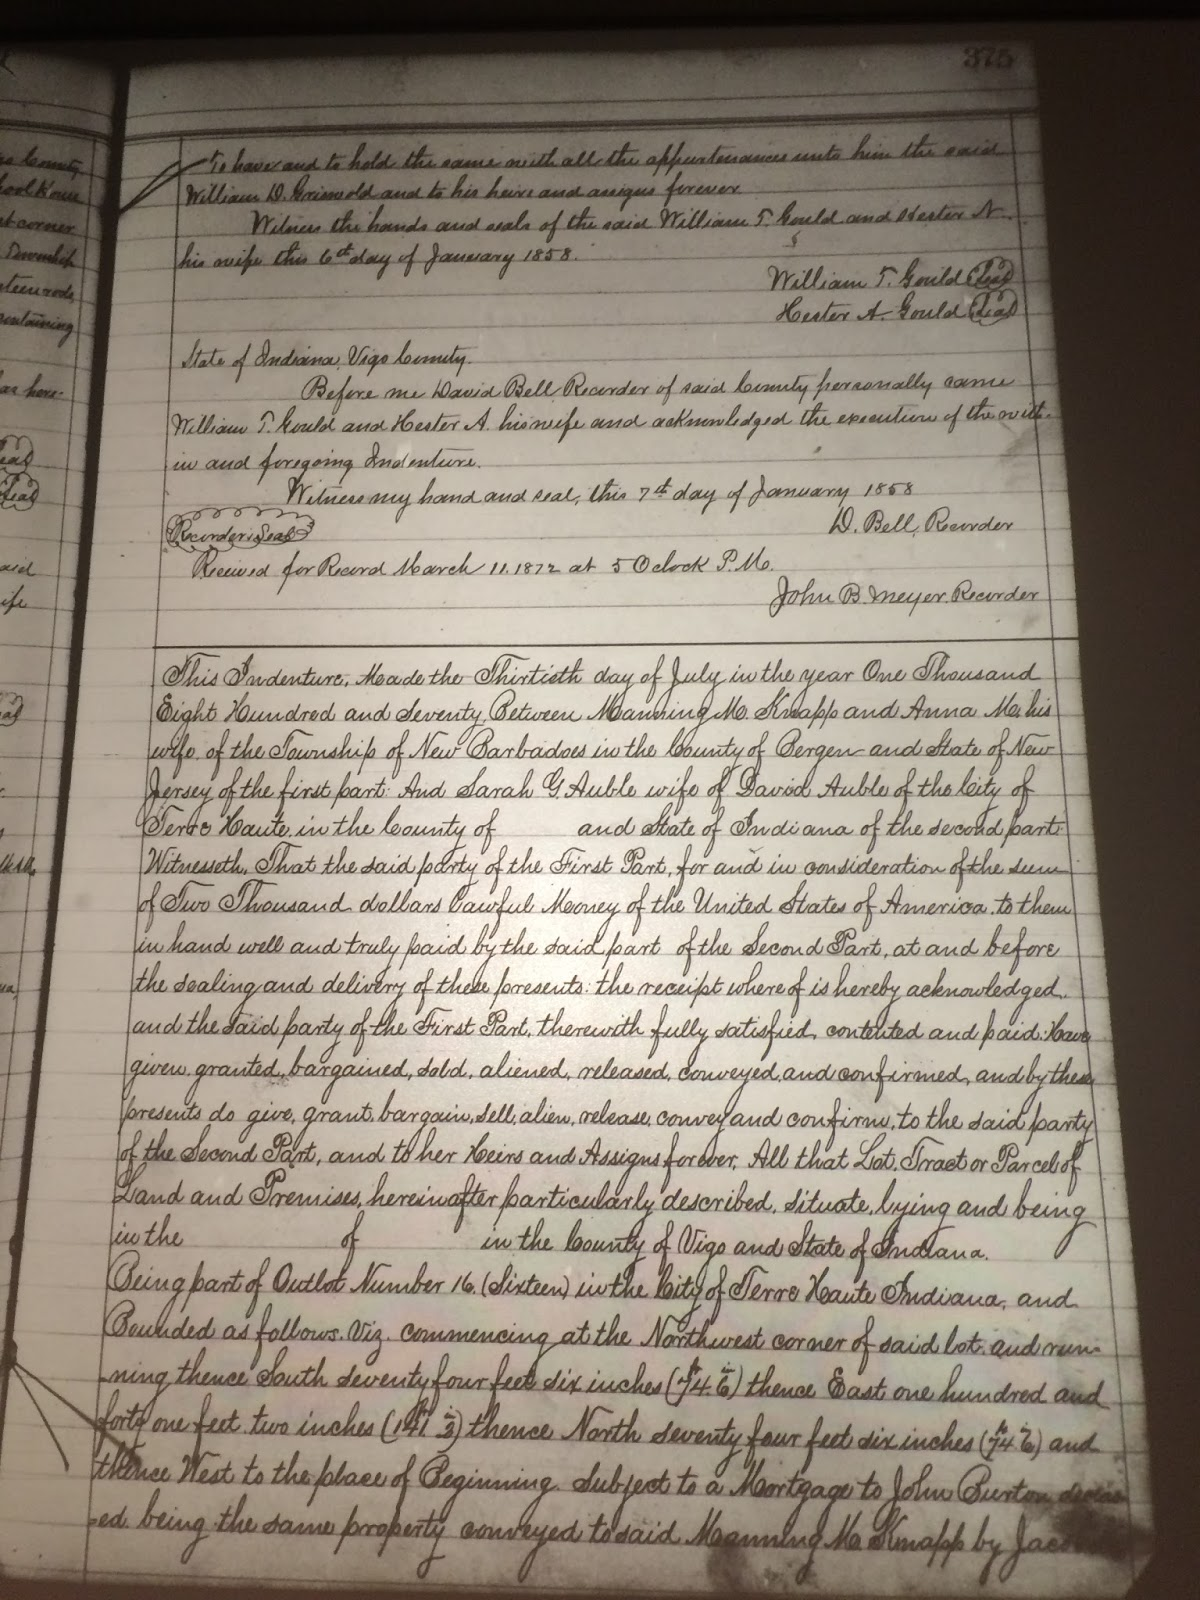 Genea musings amanuensis monday post 337 1870 deed of the subject today is the deed of conveyance from manning m and anna m knapp to sarah g auble for land in terre haute vigo county indiana aiddatafo Gallery